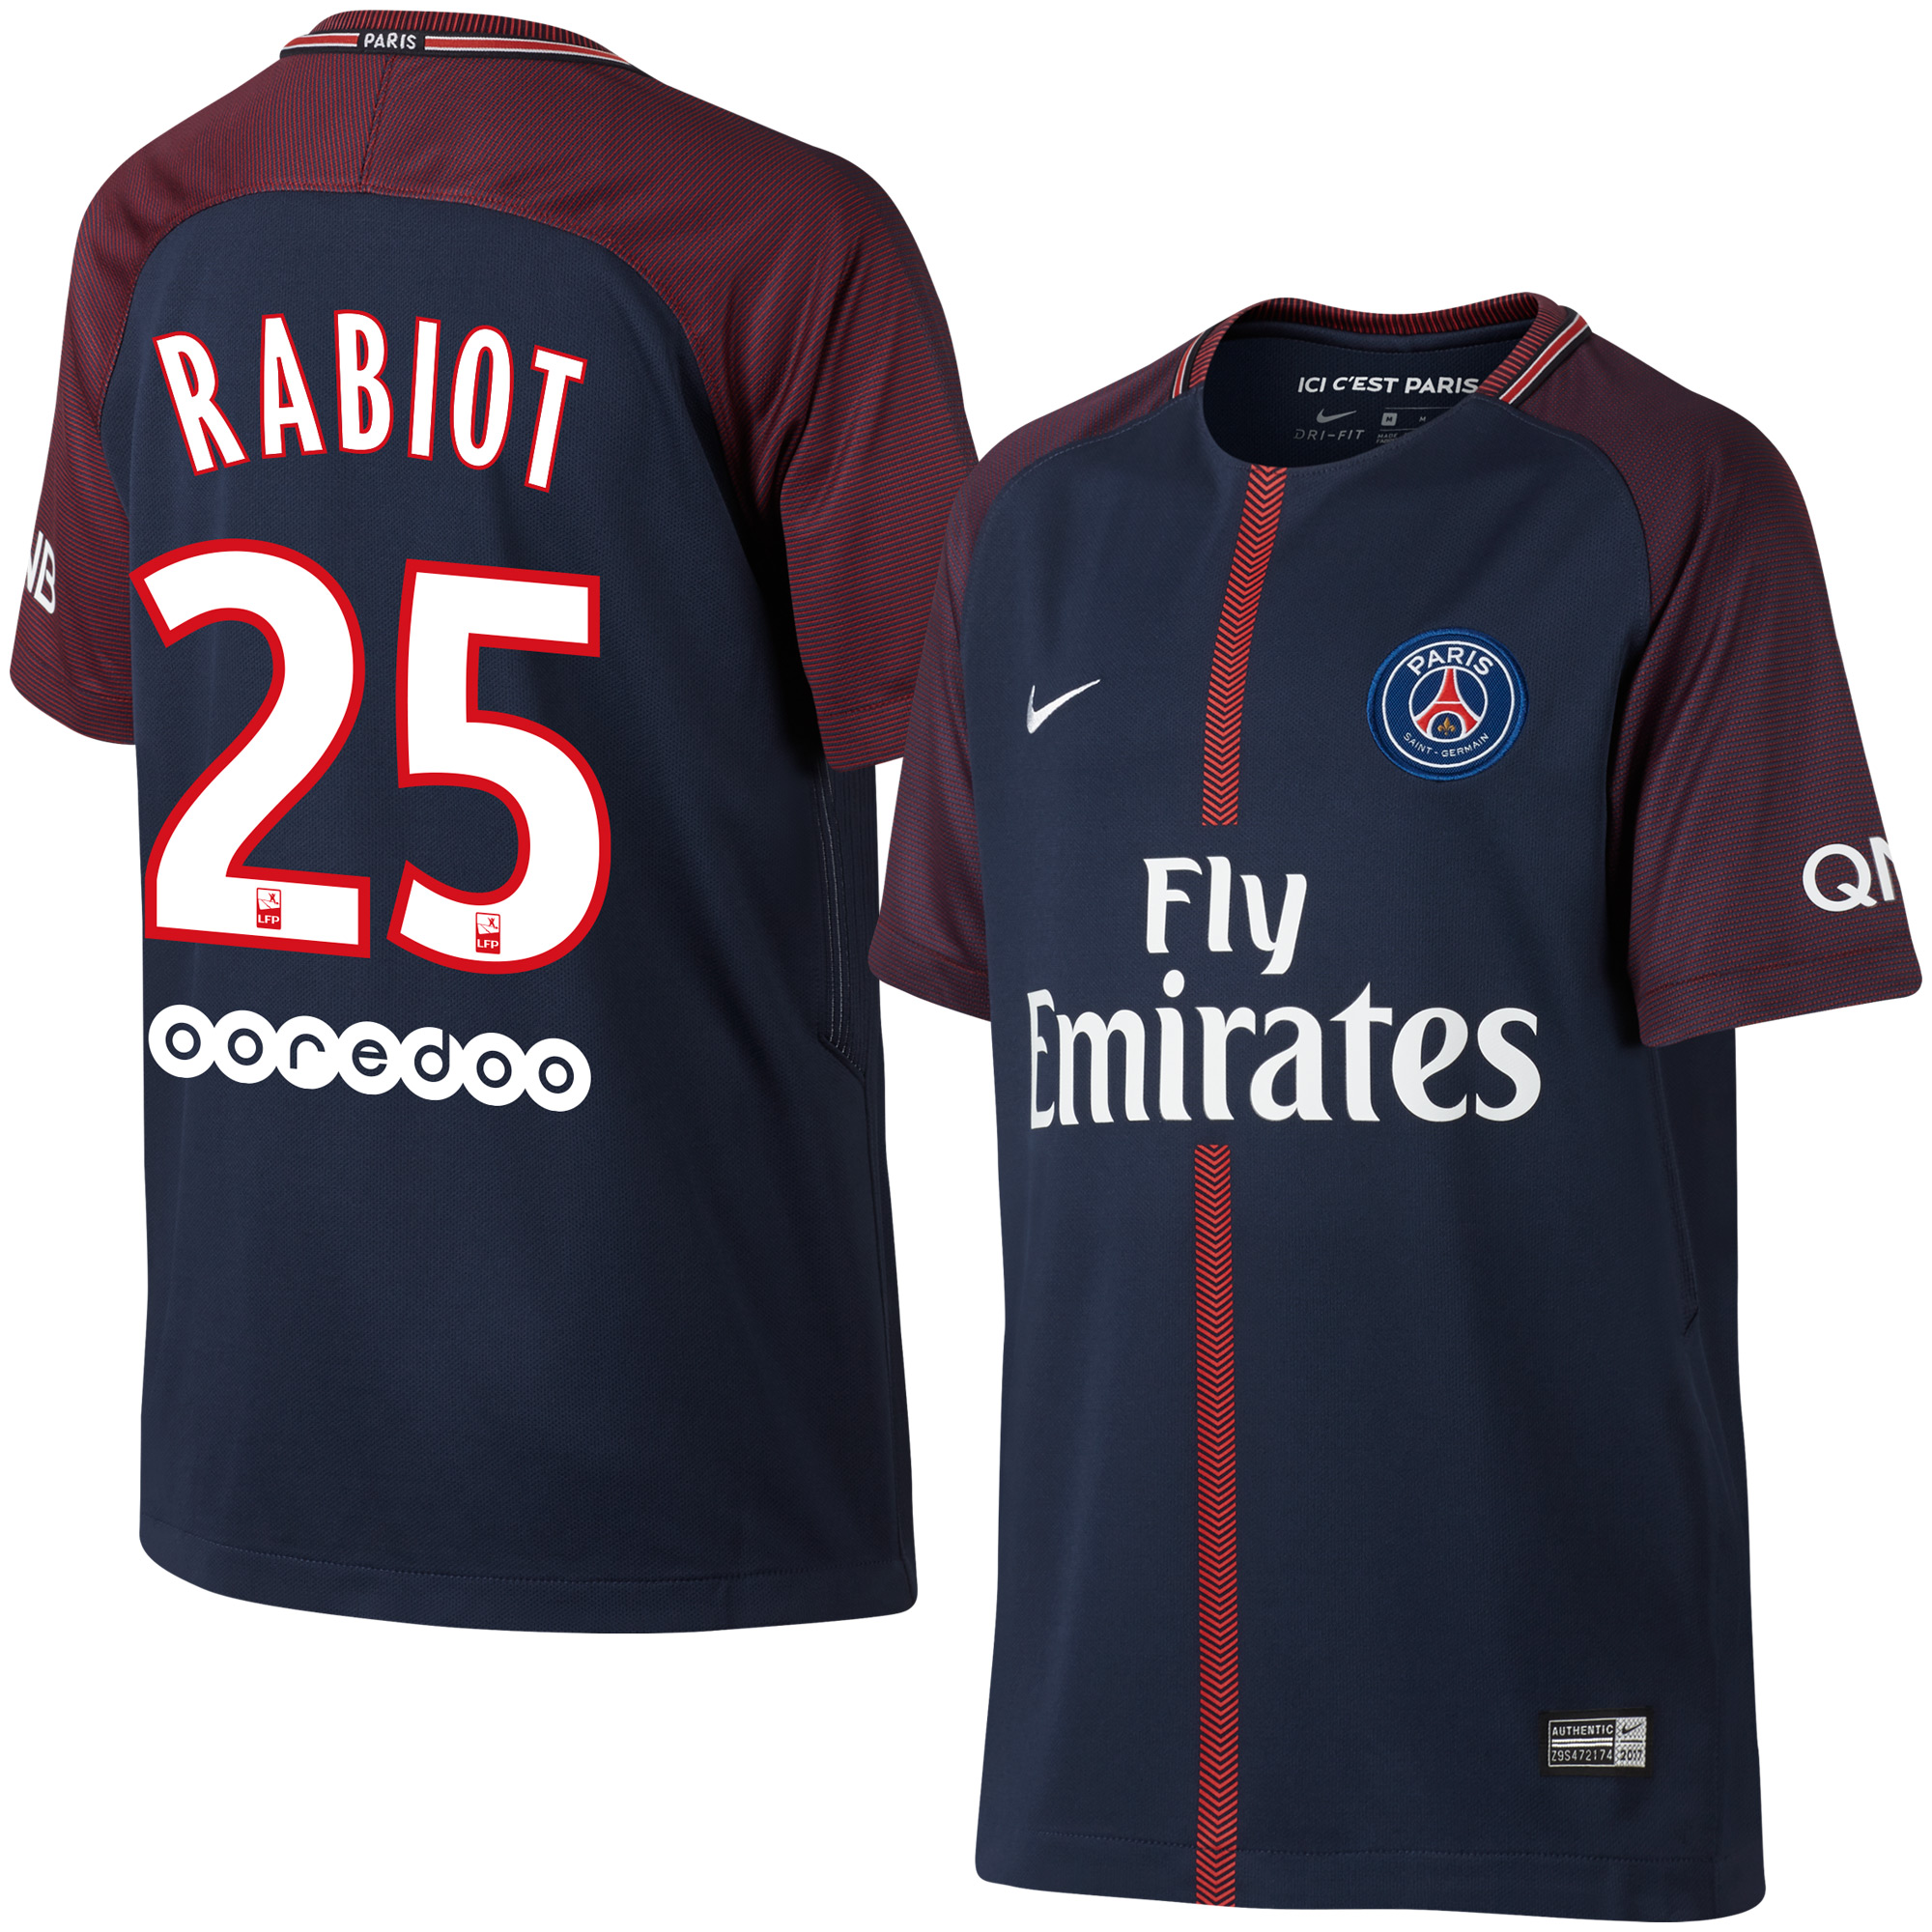 PSG Home Rabiot Jersey 2017 / 2018 + Sponsor (Official Player Printing) - XXL